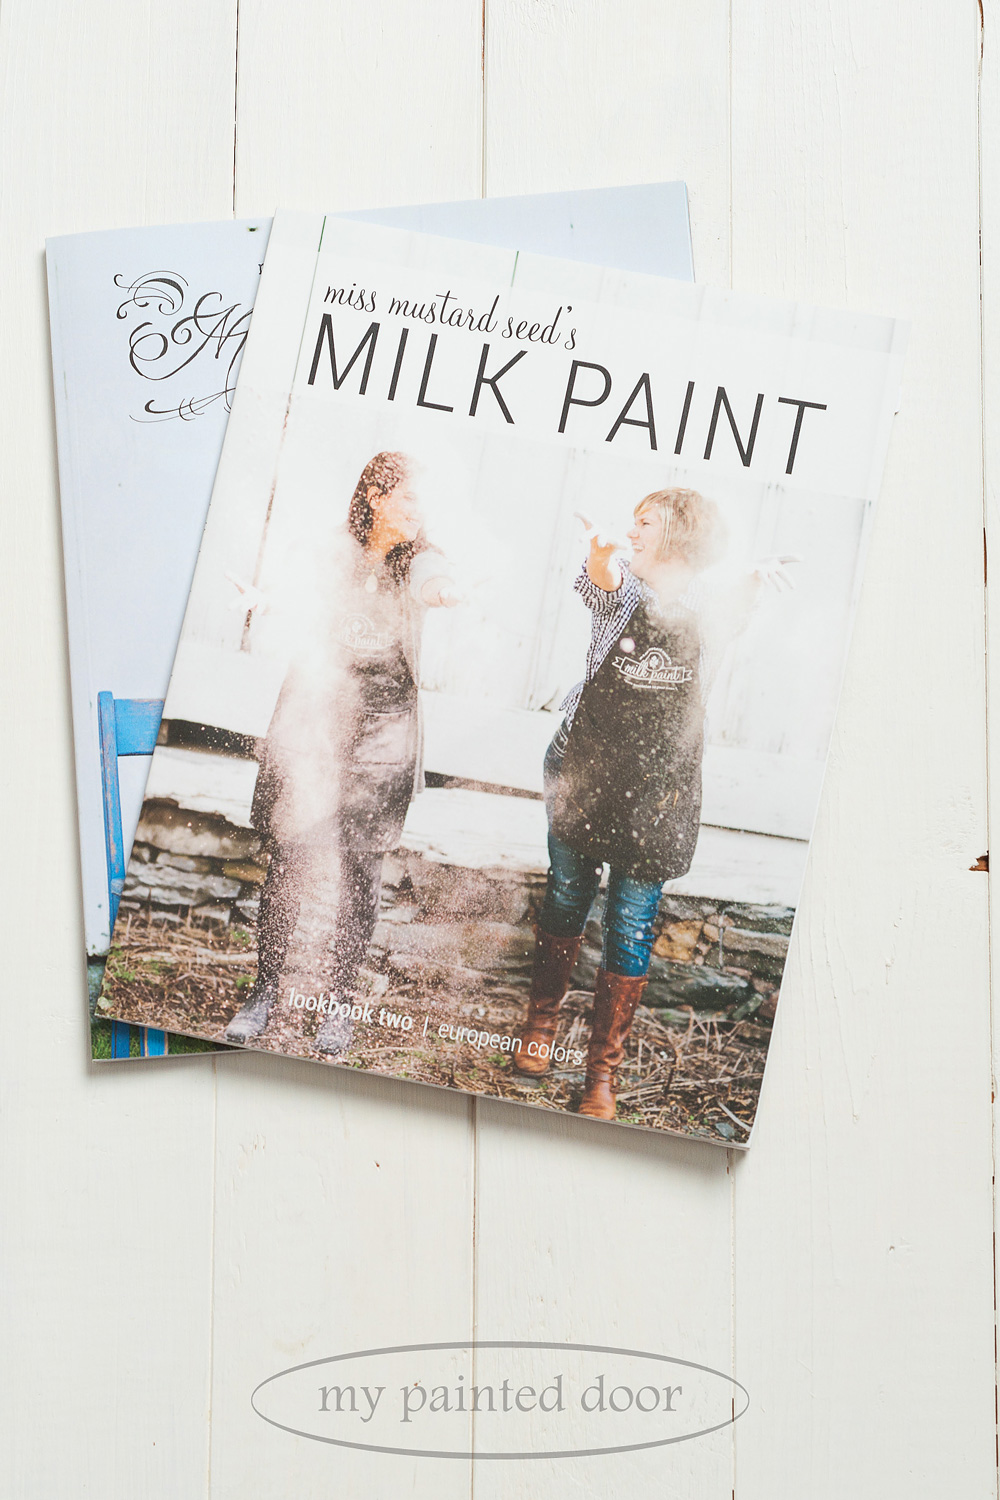 Miss Mustard Seed's Milk Paint Look Book One and Look Book Two